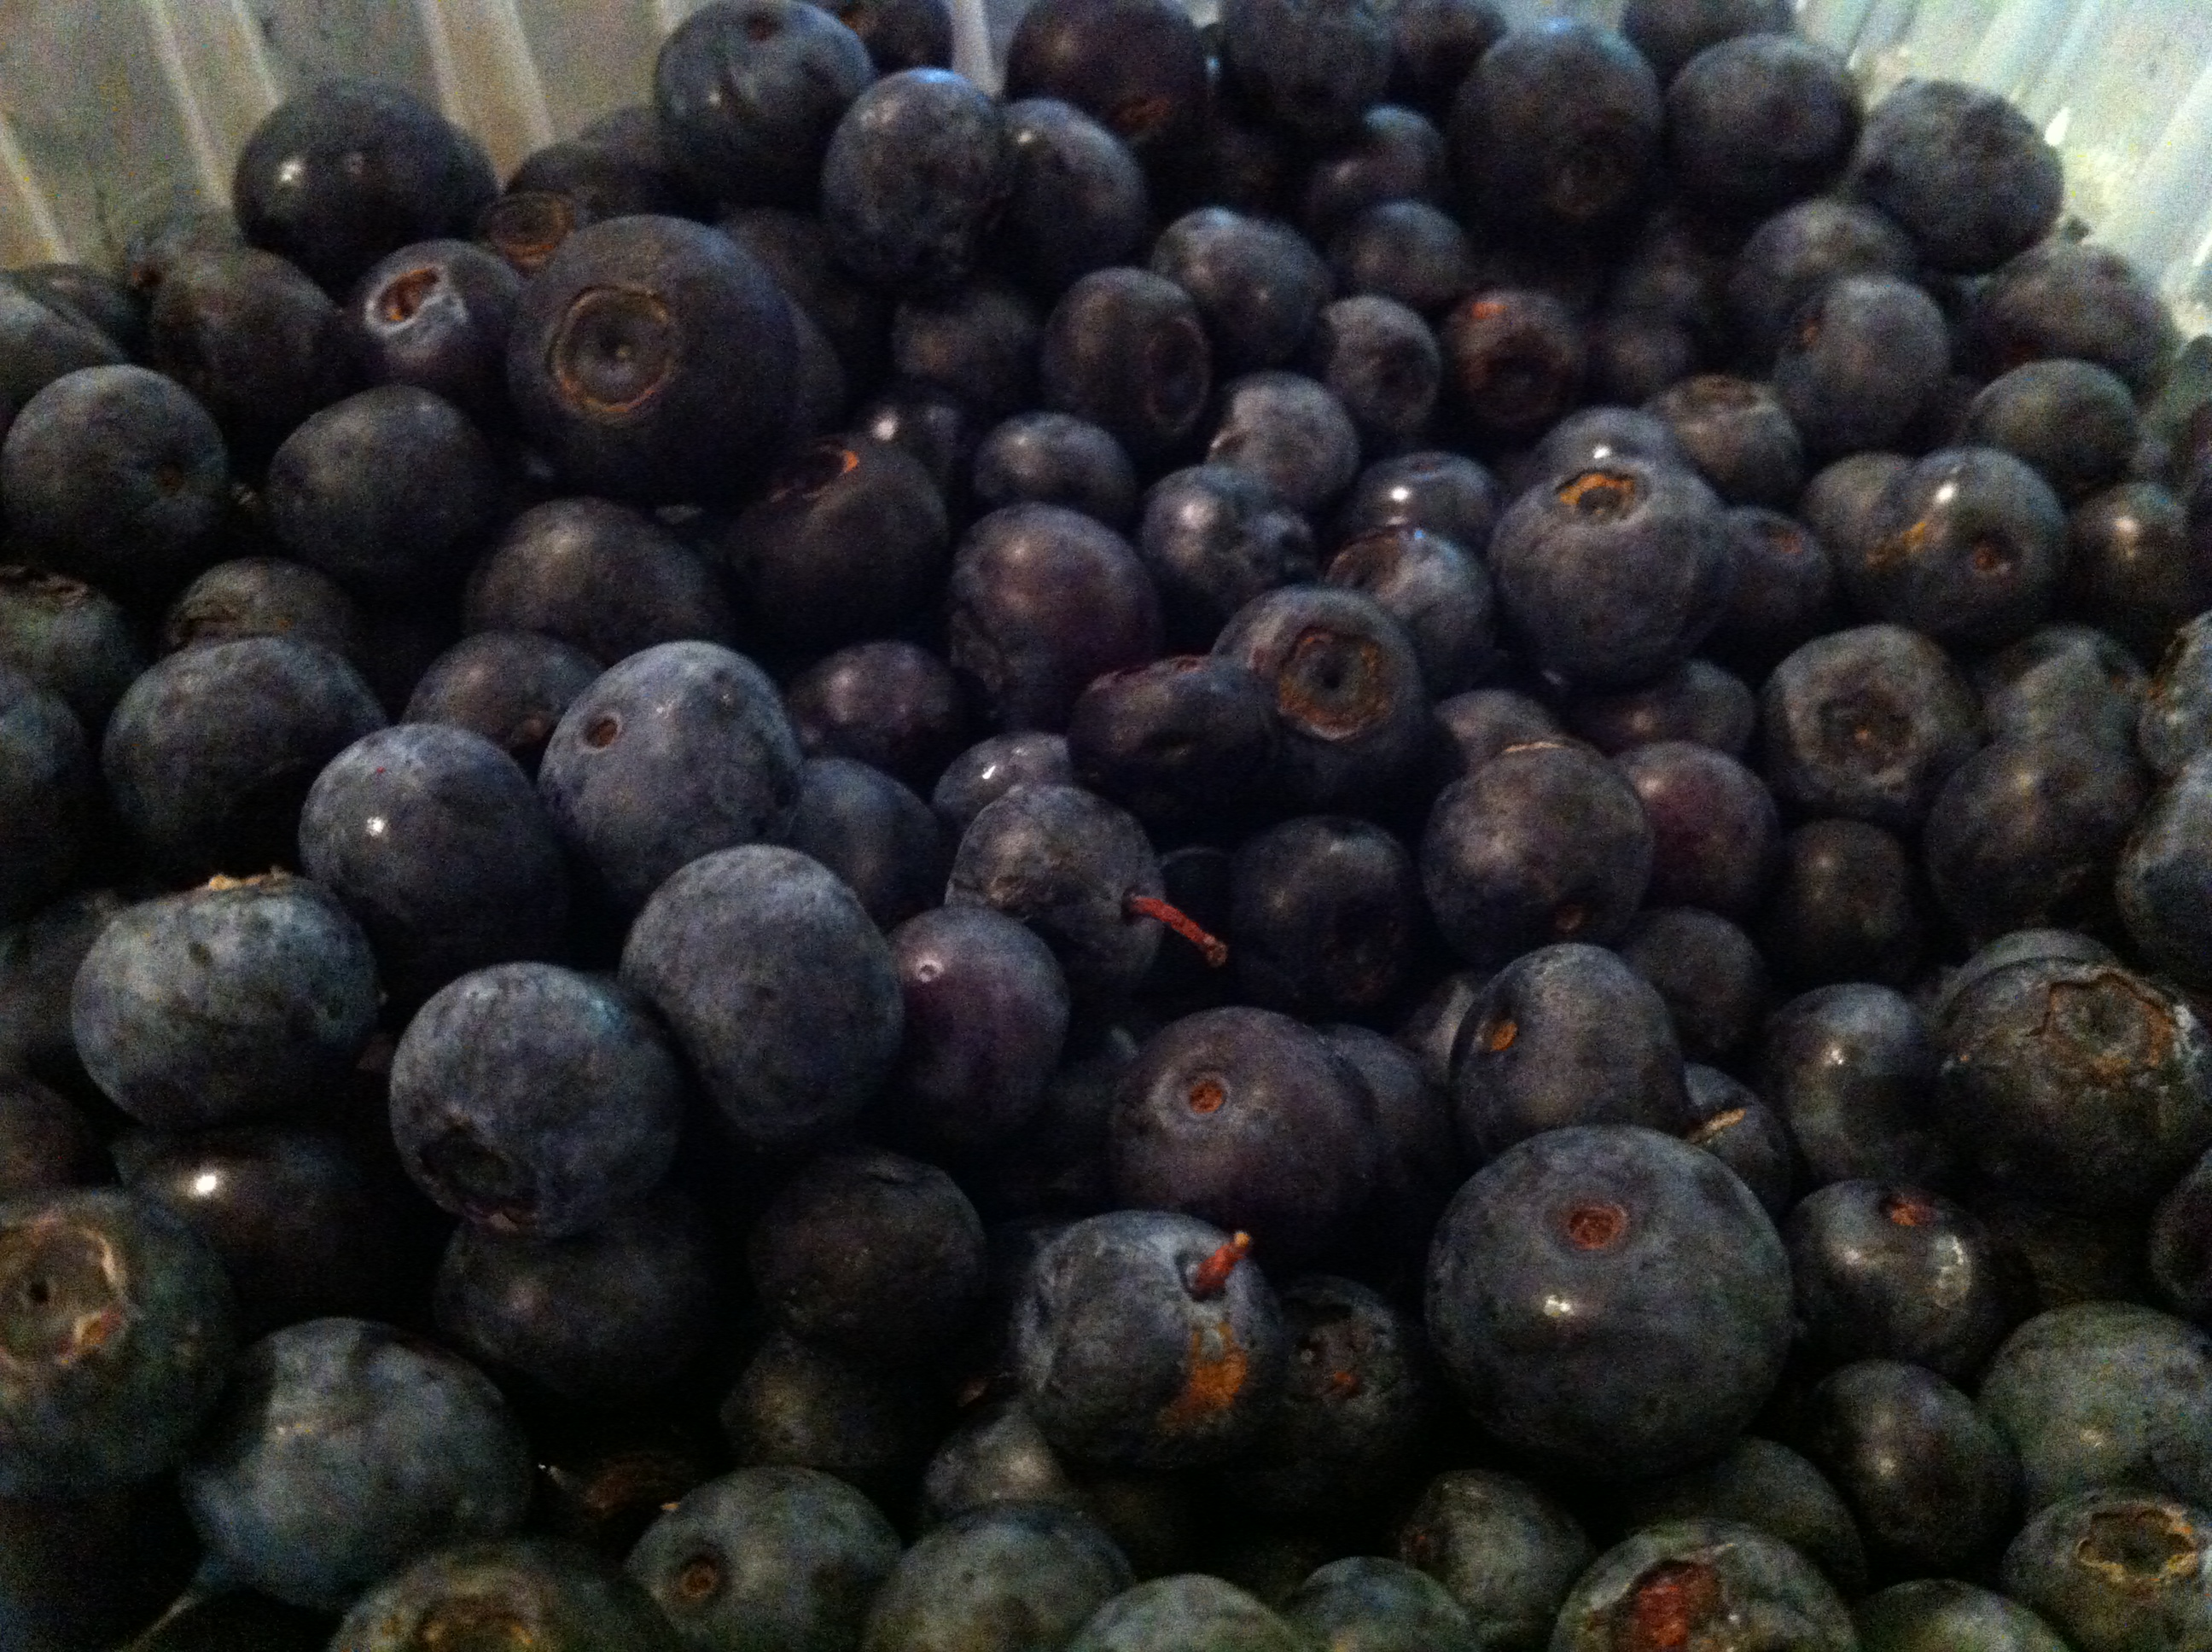 What to do with ripe fruit